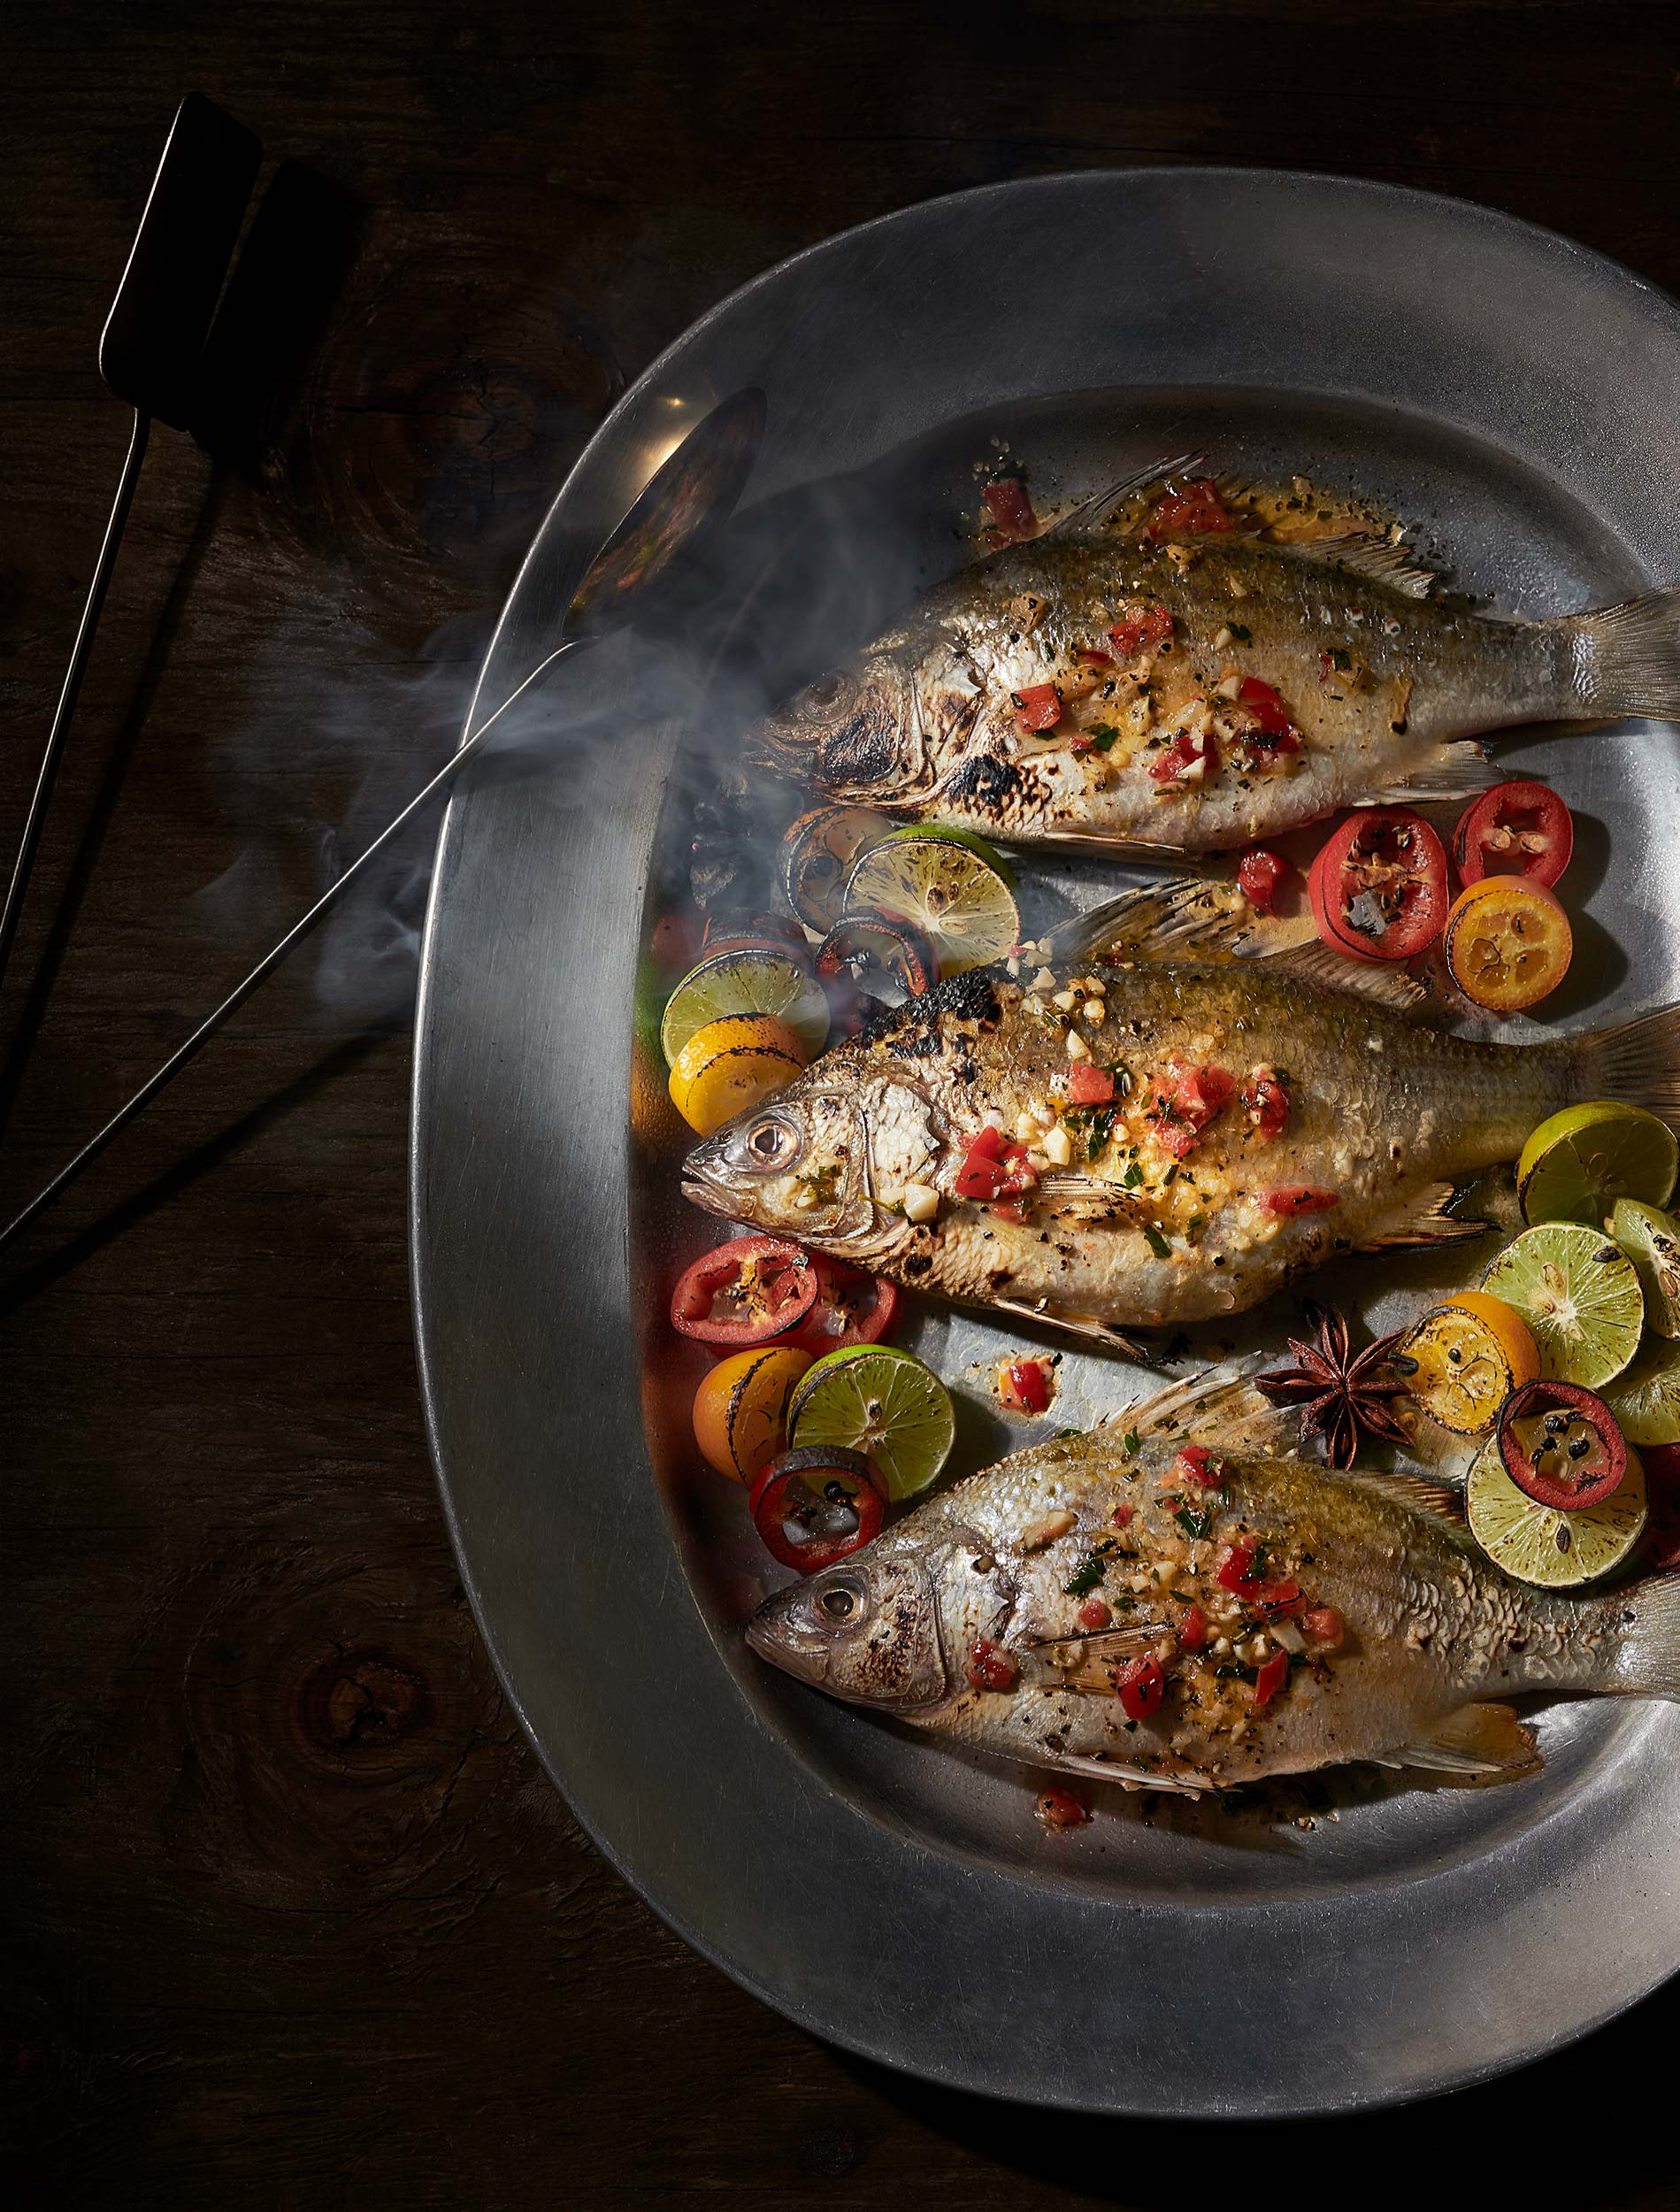 Roasted Fish 2 | Steve Hansen Images Seattle Food Photographer